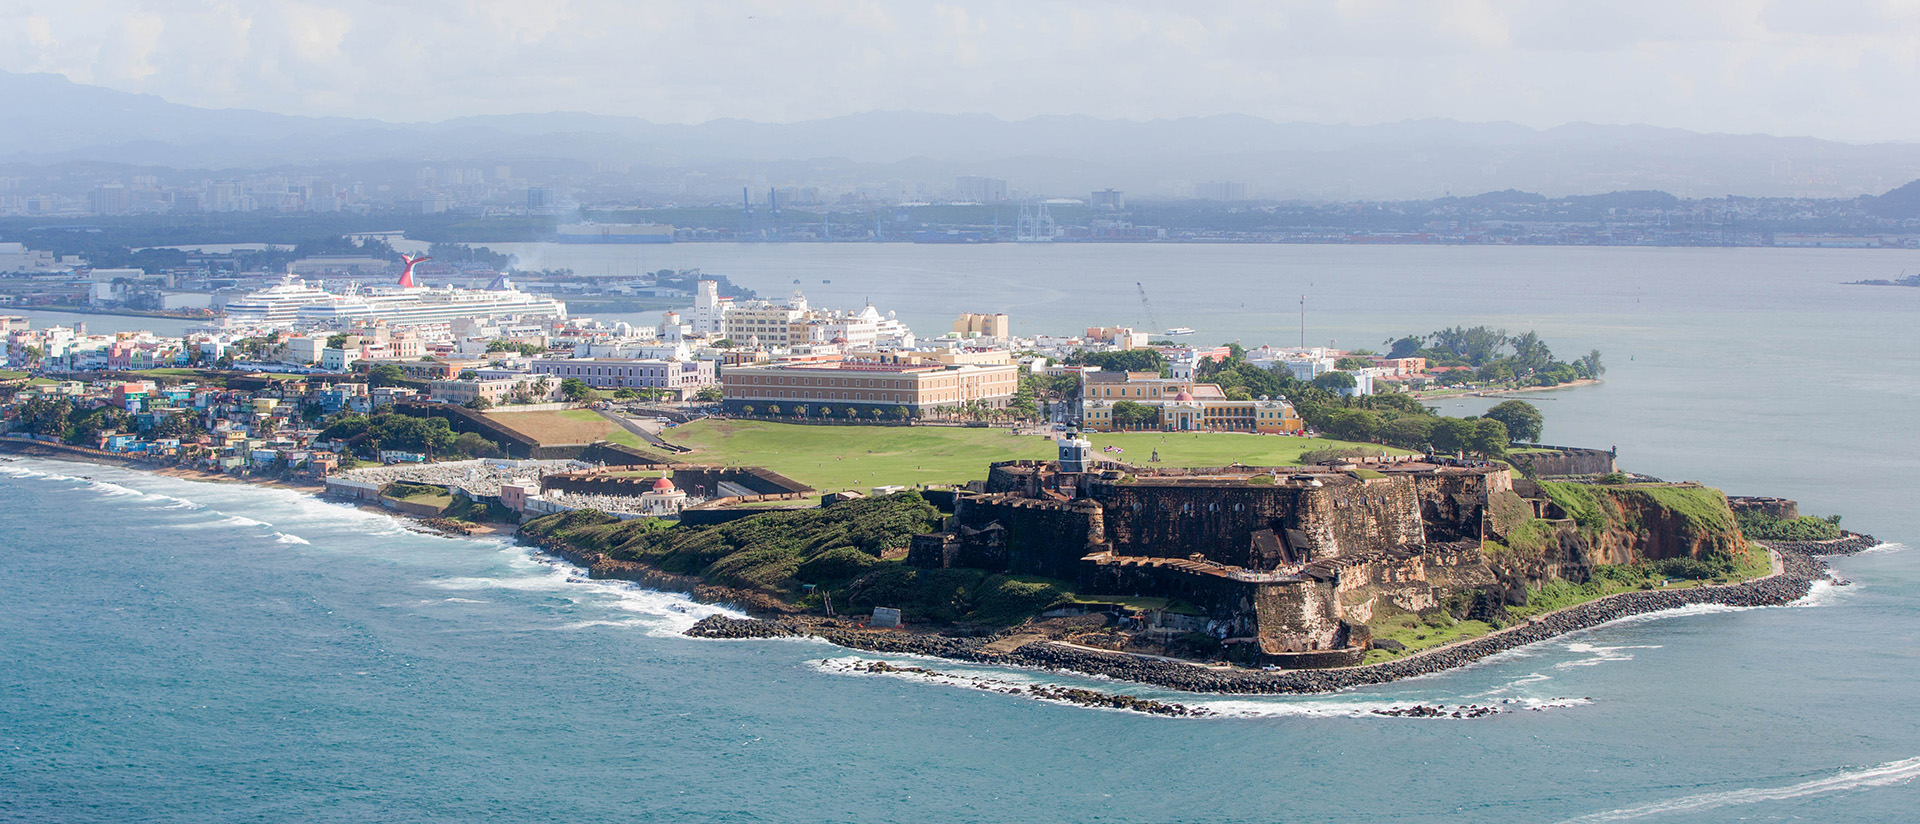 Puerto Rico: Charm, Clubs, and Convenience